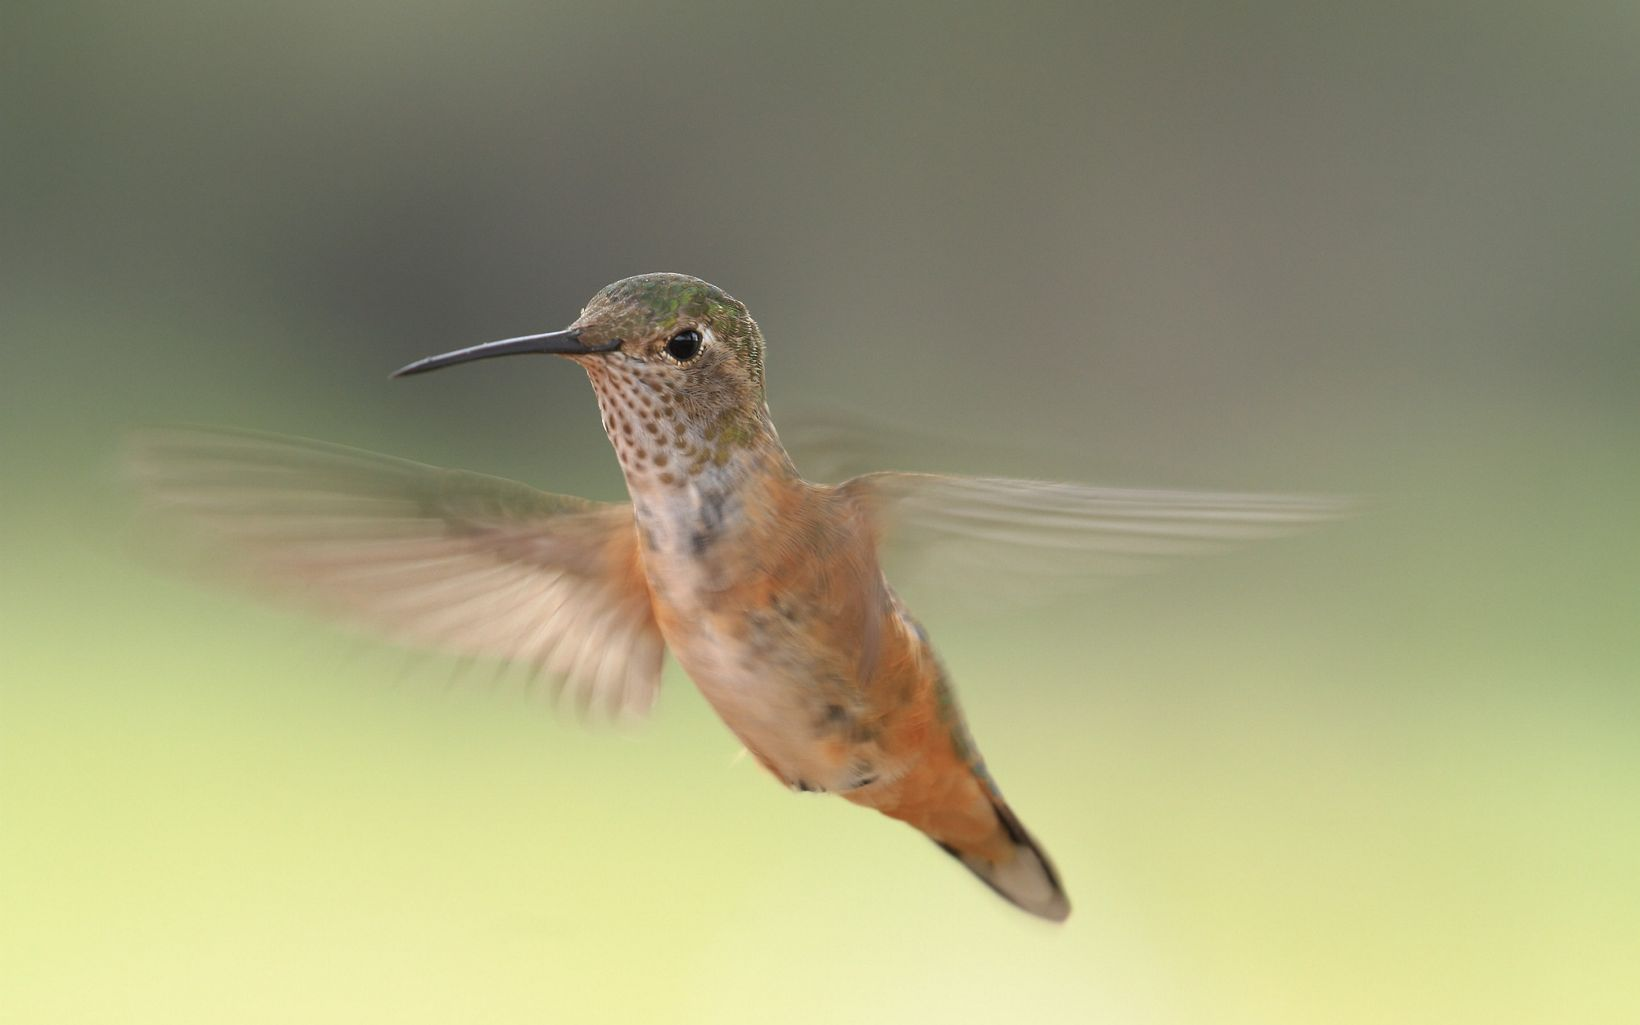 Close-up of a hummingbird in flight.